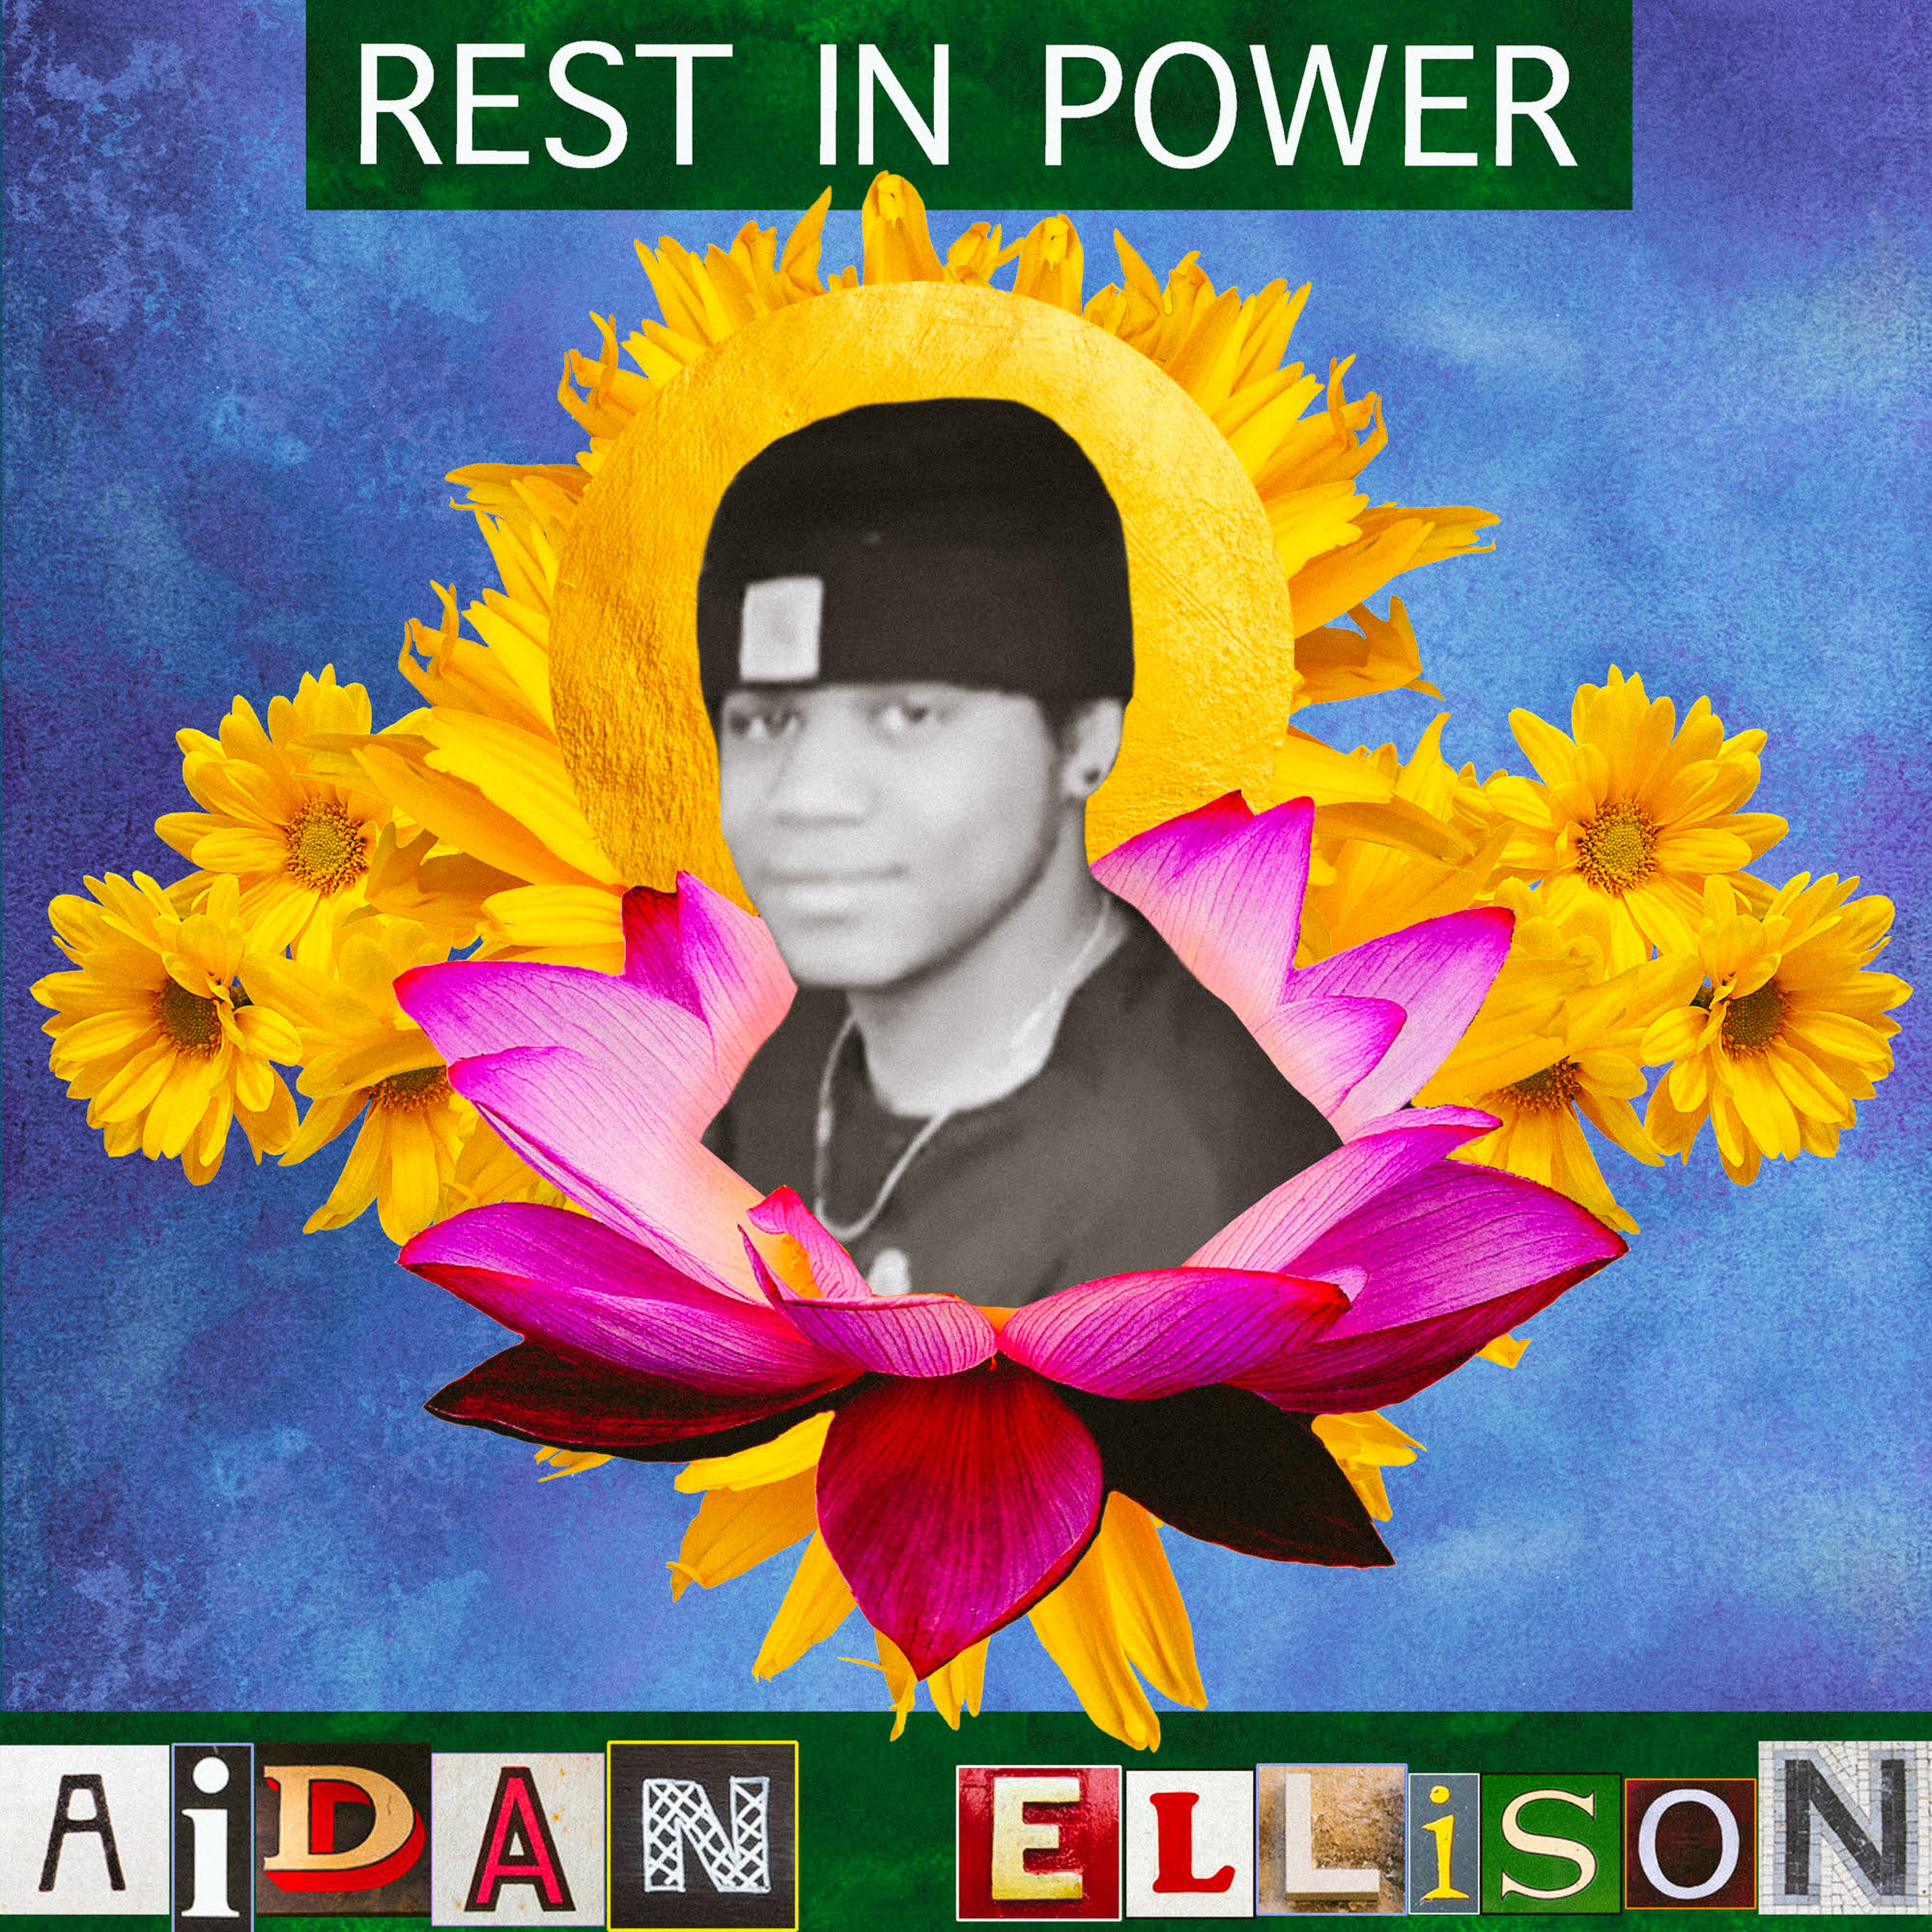 Image spells out rest in power Aidan Ellison, with a picture of Aidan smiling with flowers collaged behind him.